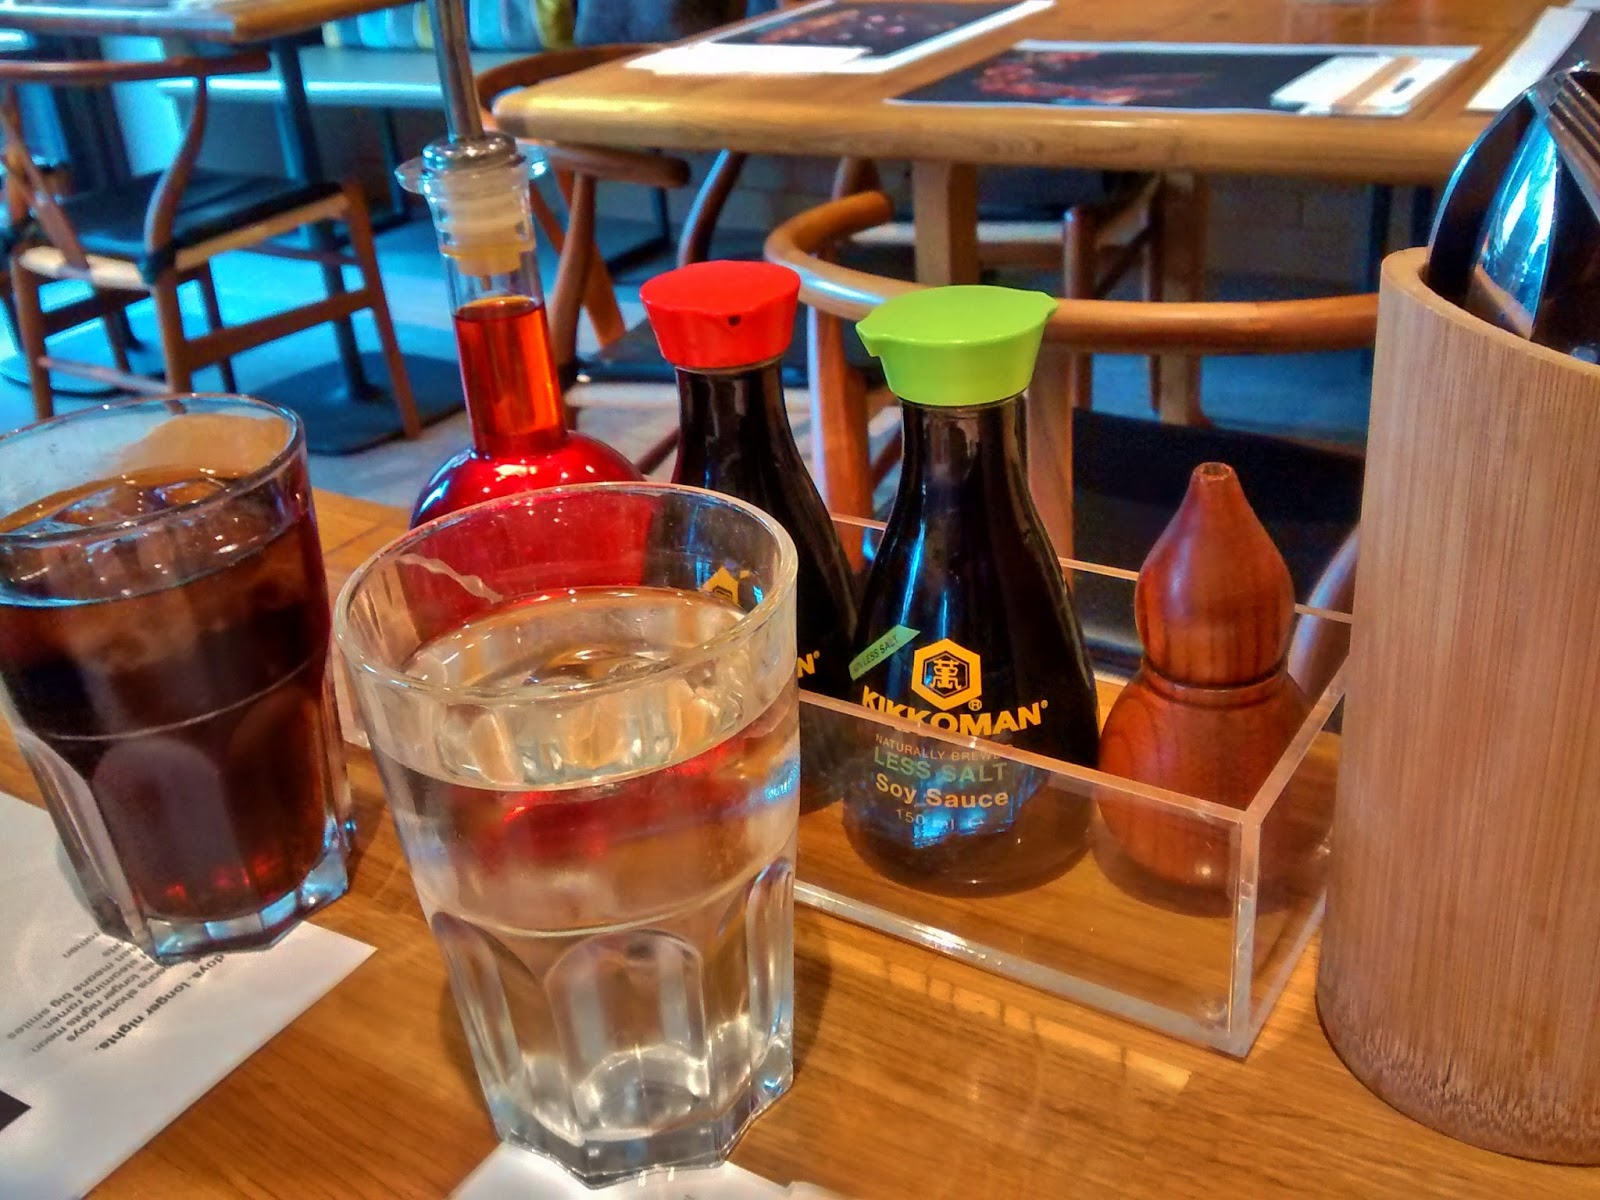 Wagamamas sauces and drinks